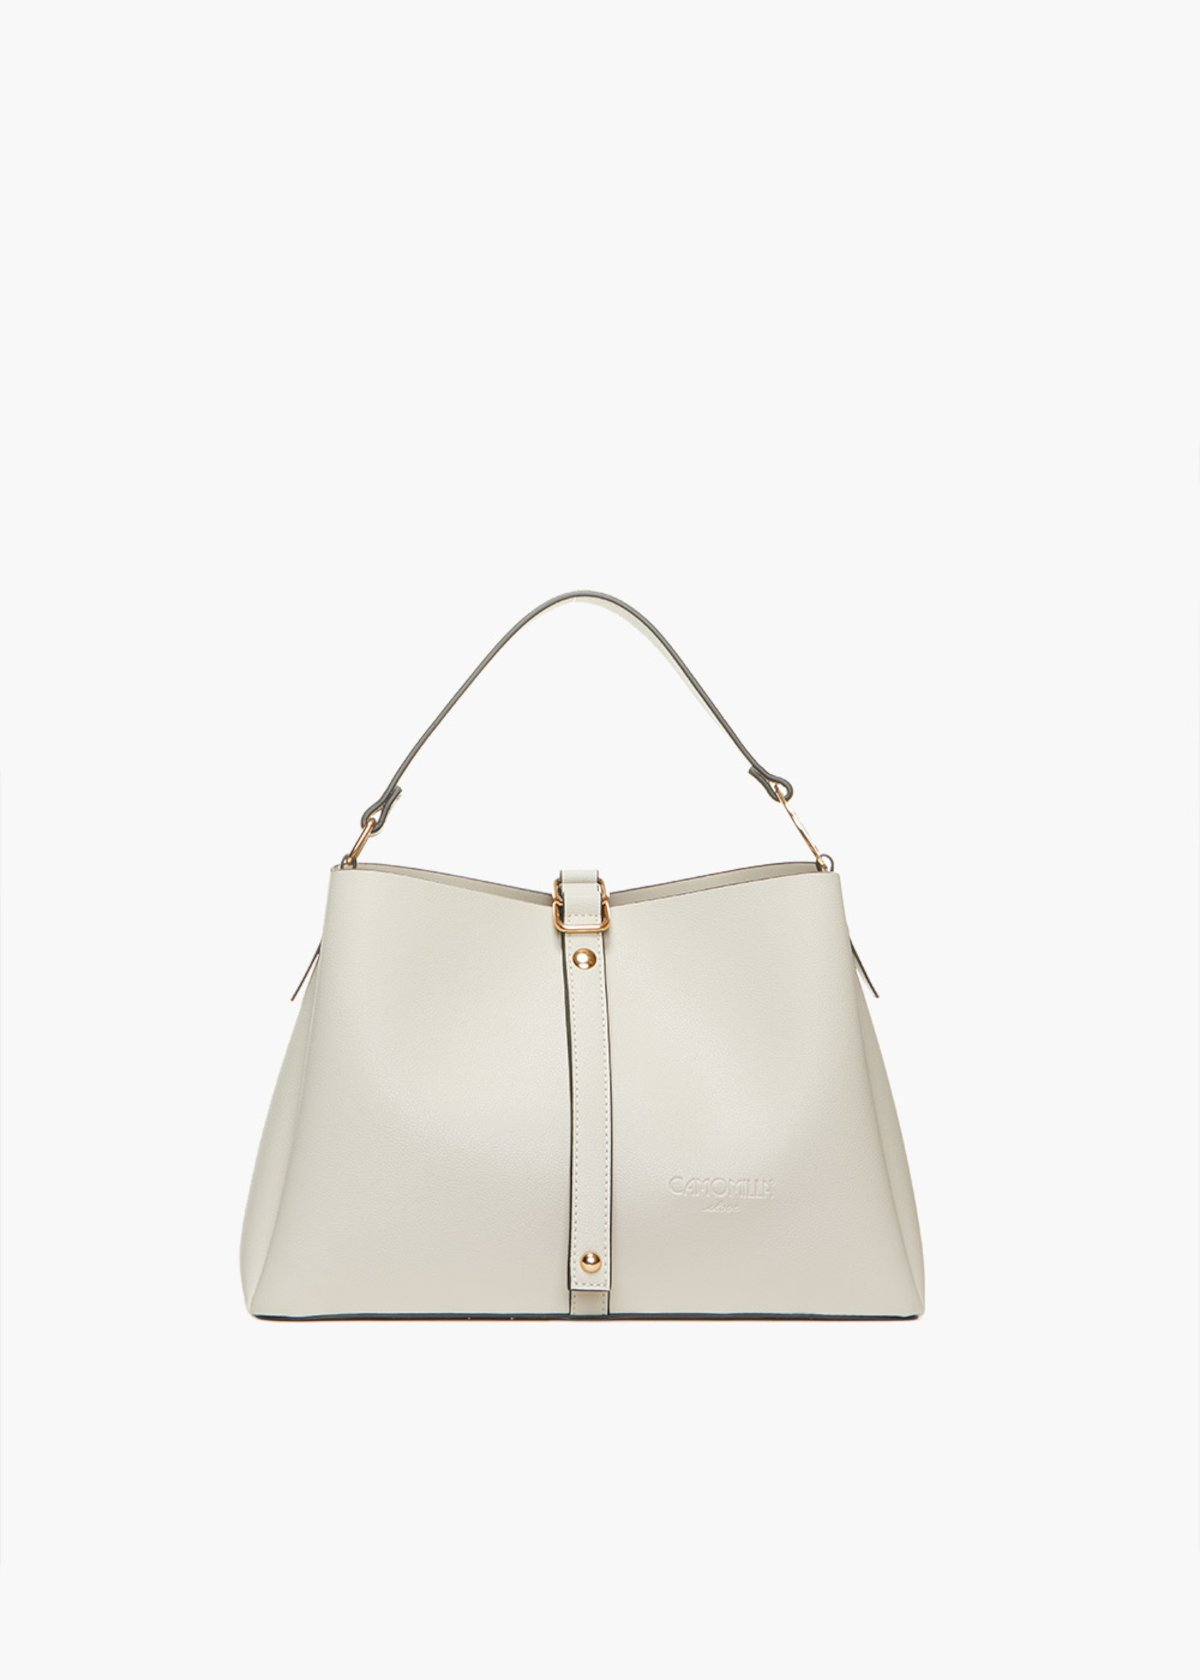 Brynn handles bag with strap - Light Beige - Woman - Category image